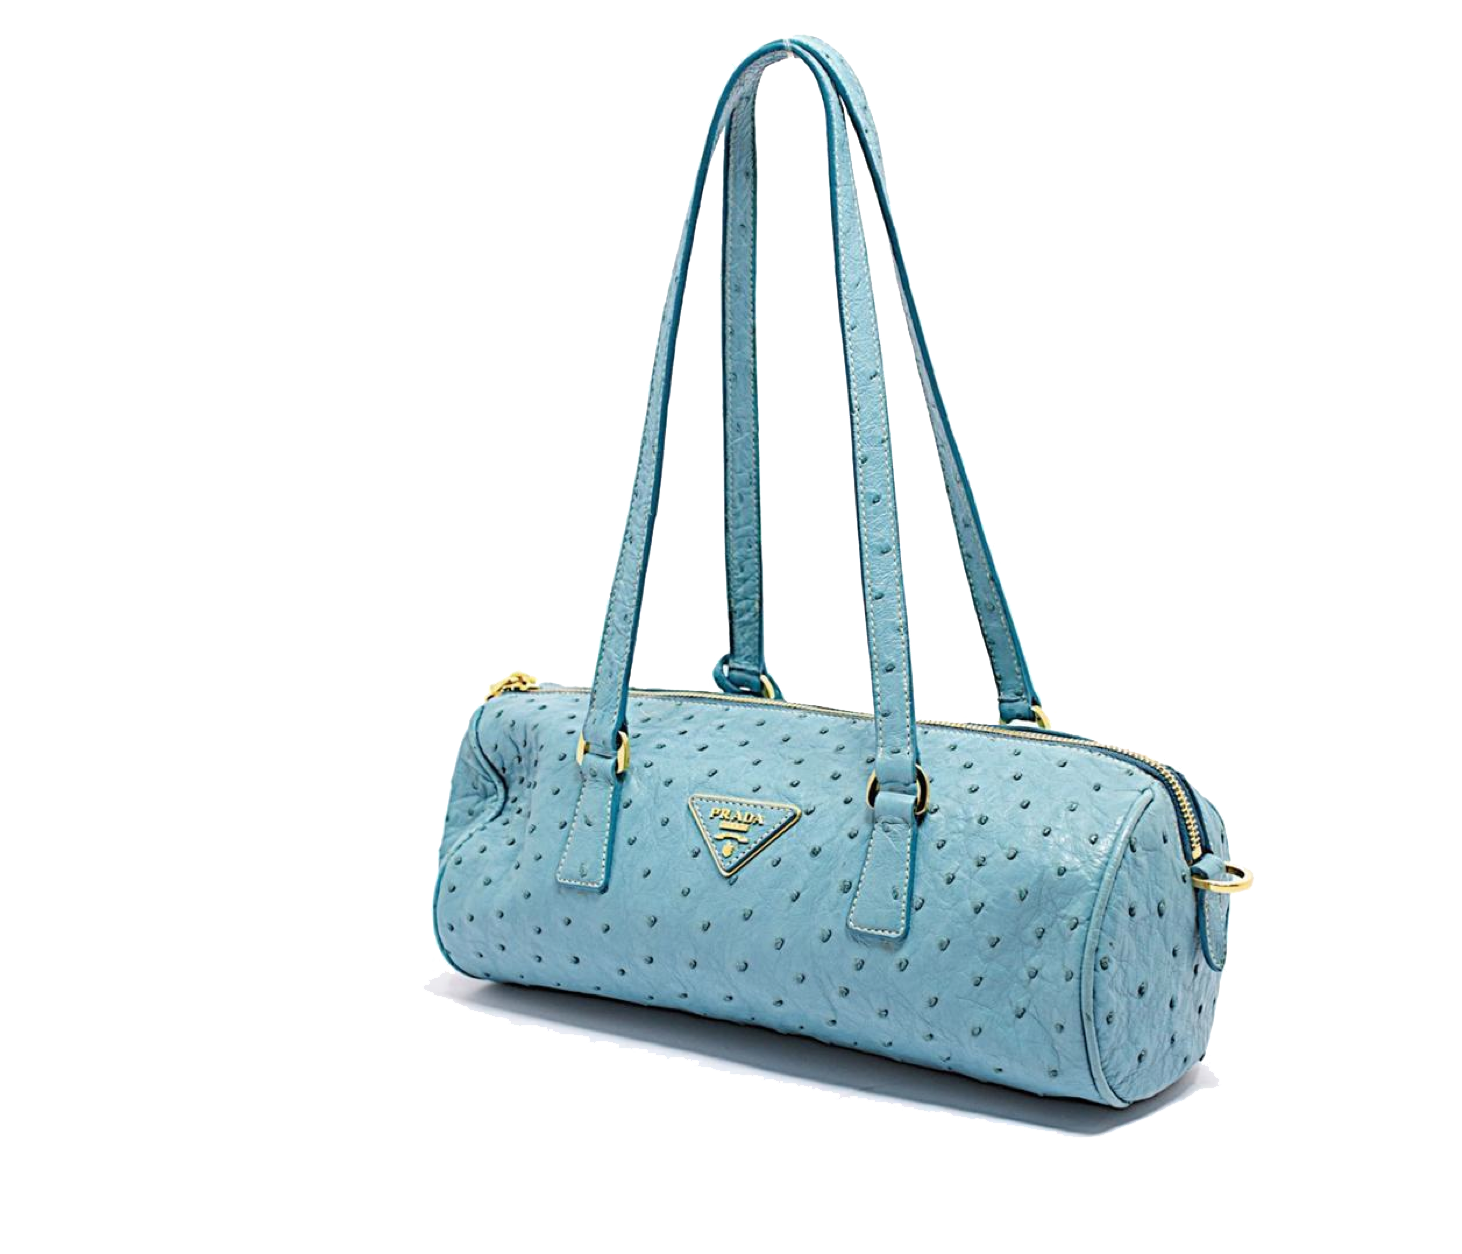 Purse Transparent PNG Image